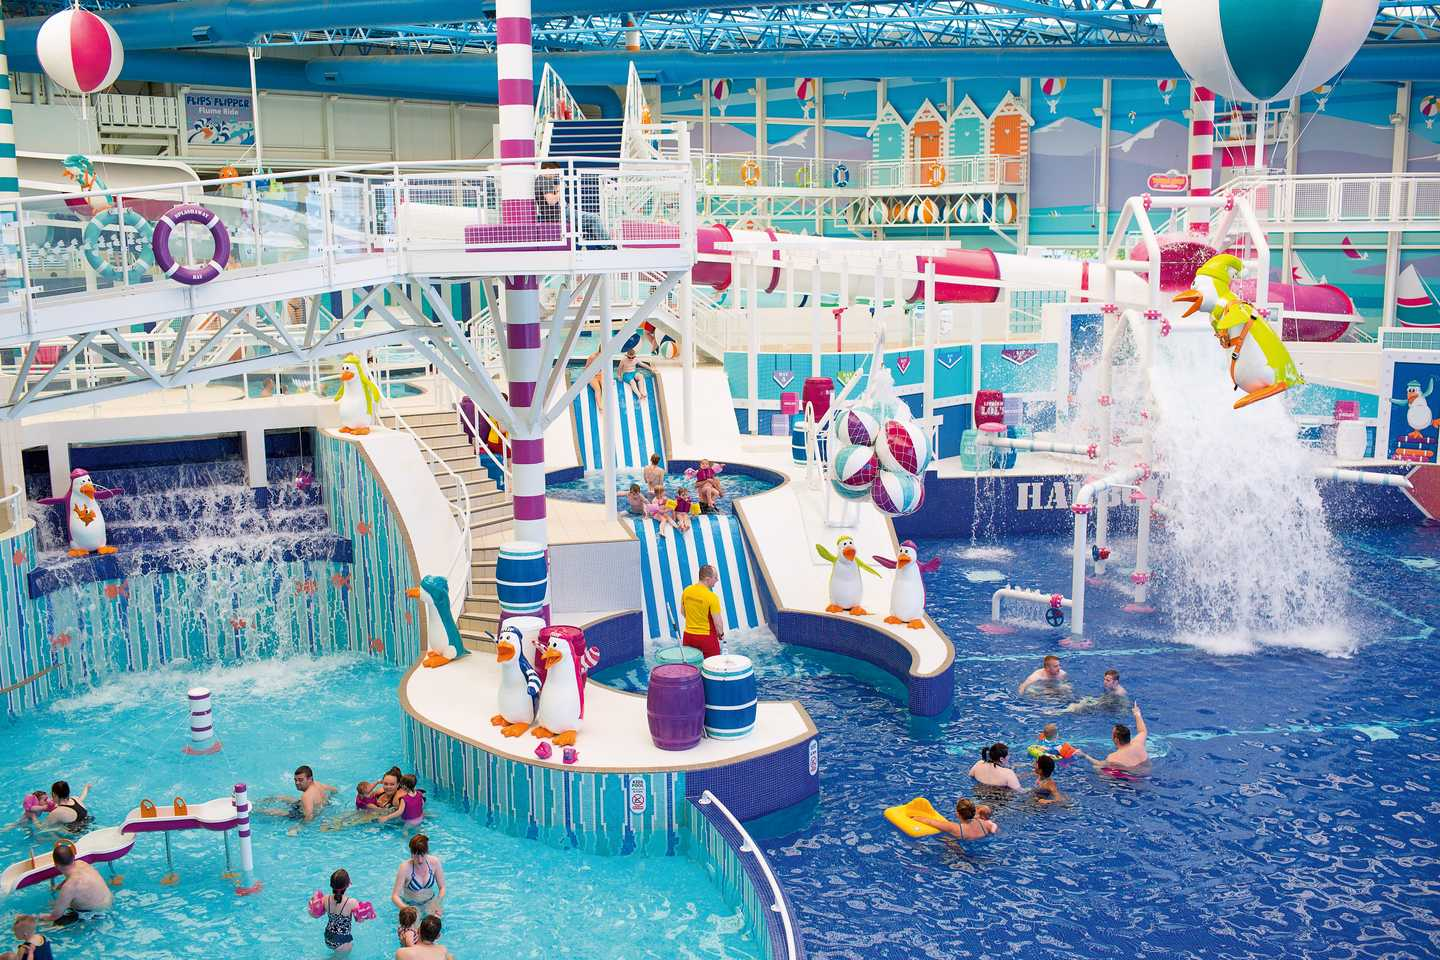 Lots of families enjoying our huge indoor pool complex at Craig Tara Holiday Park which has numerous flumes, slides and plenty of fun features